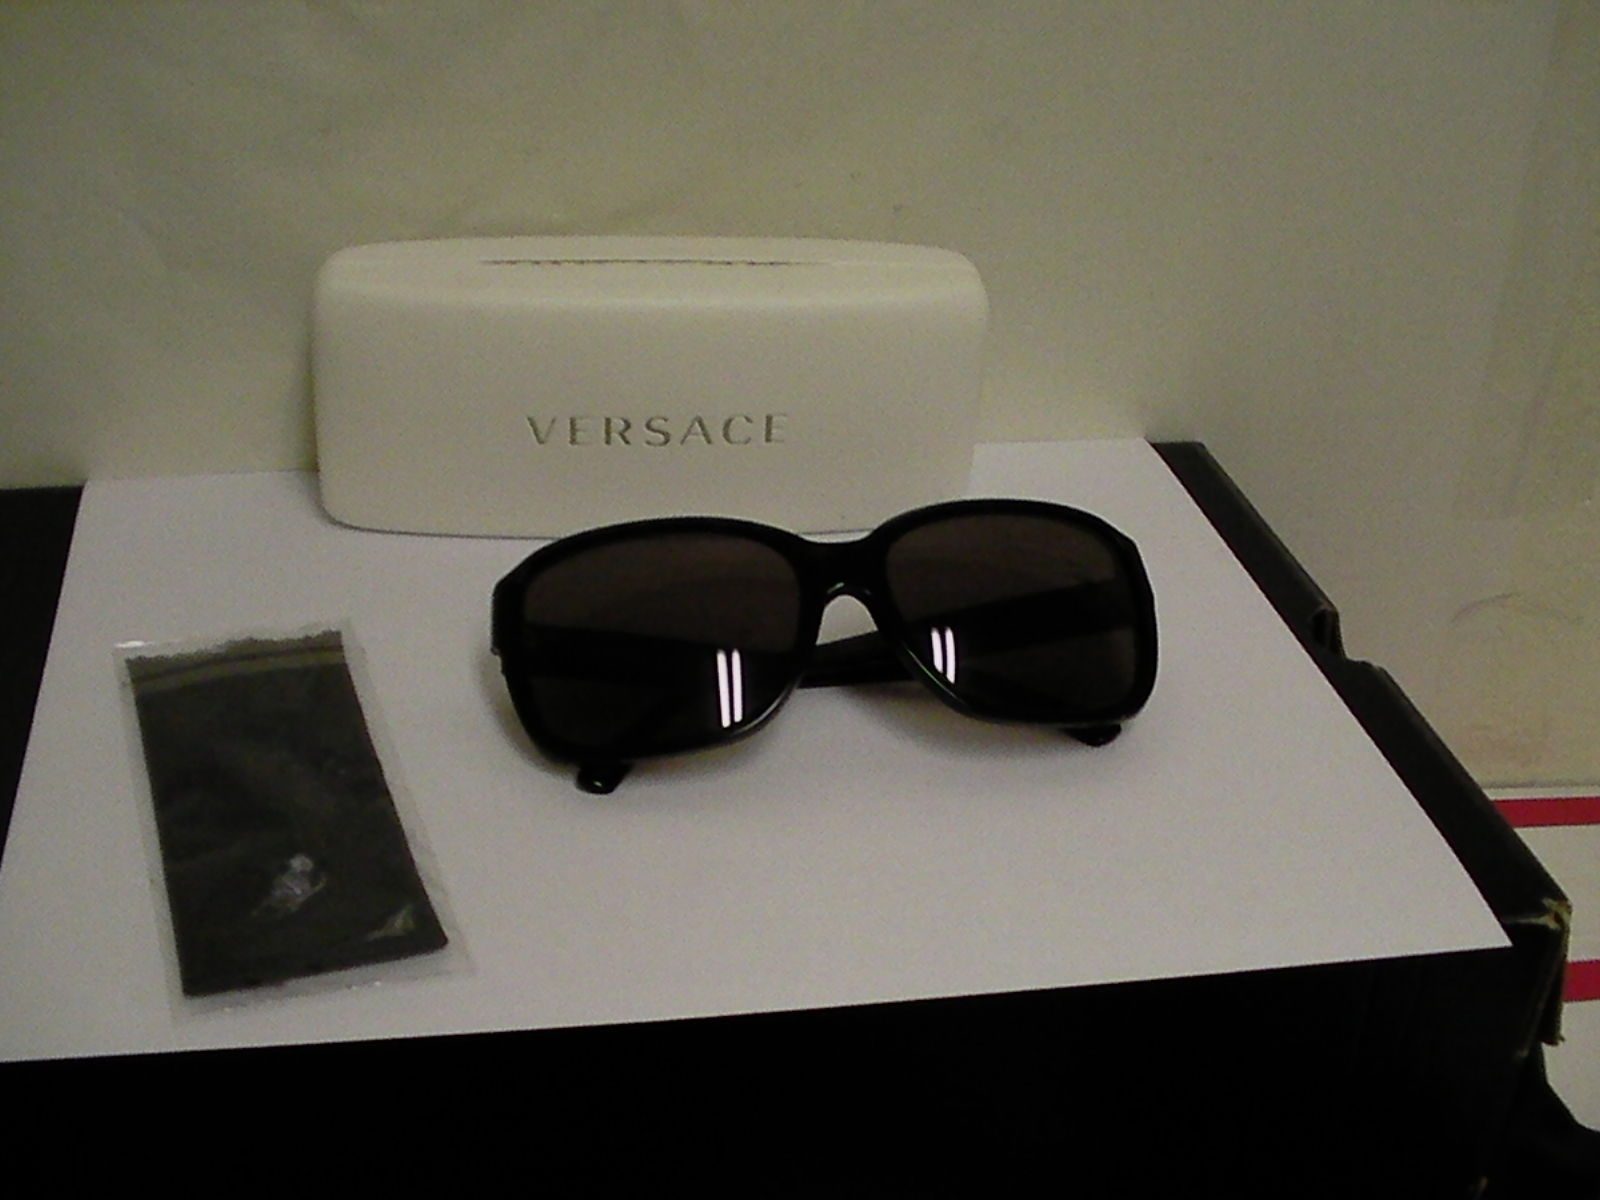 Authentic Versace Sunglasses VE4207 108 73 and 50 similar items c2ddc8d4cced